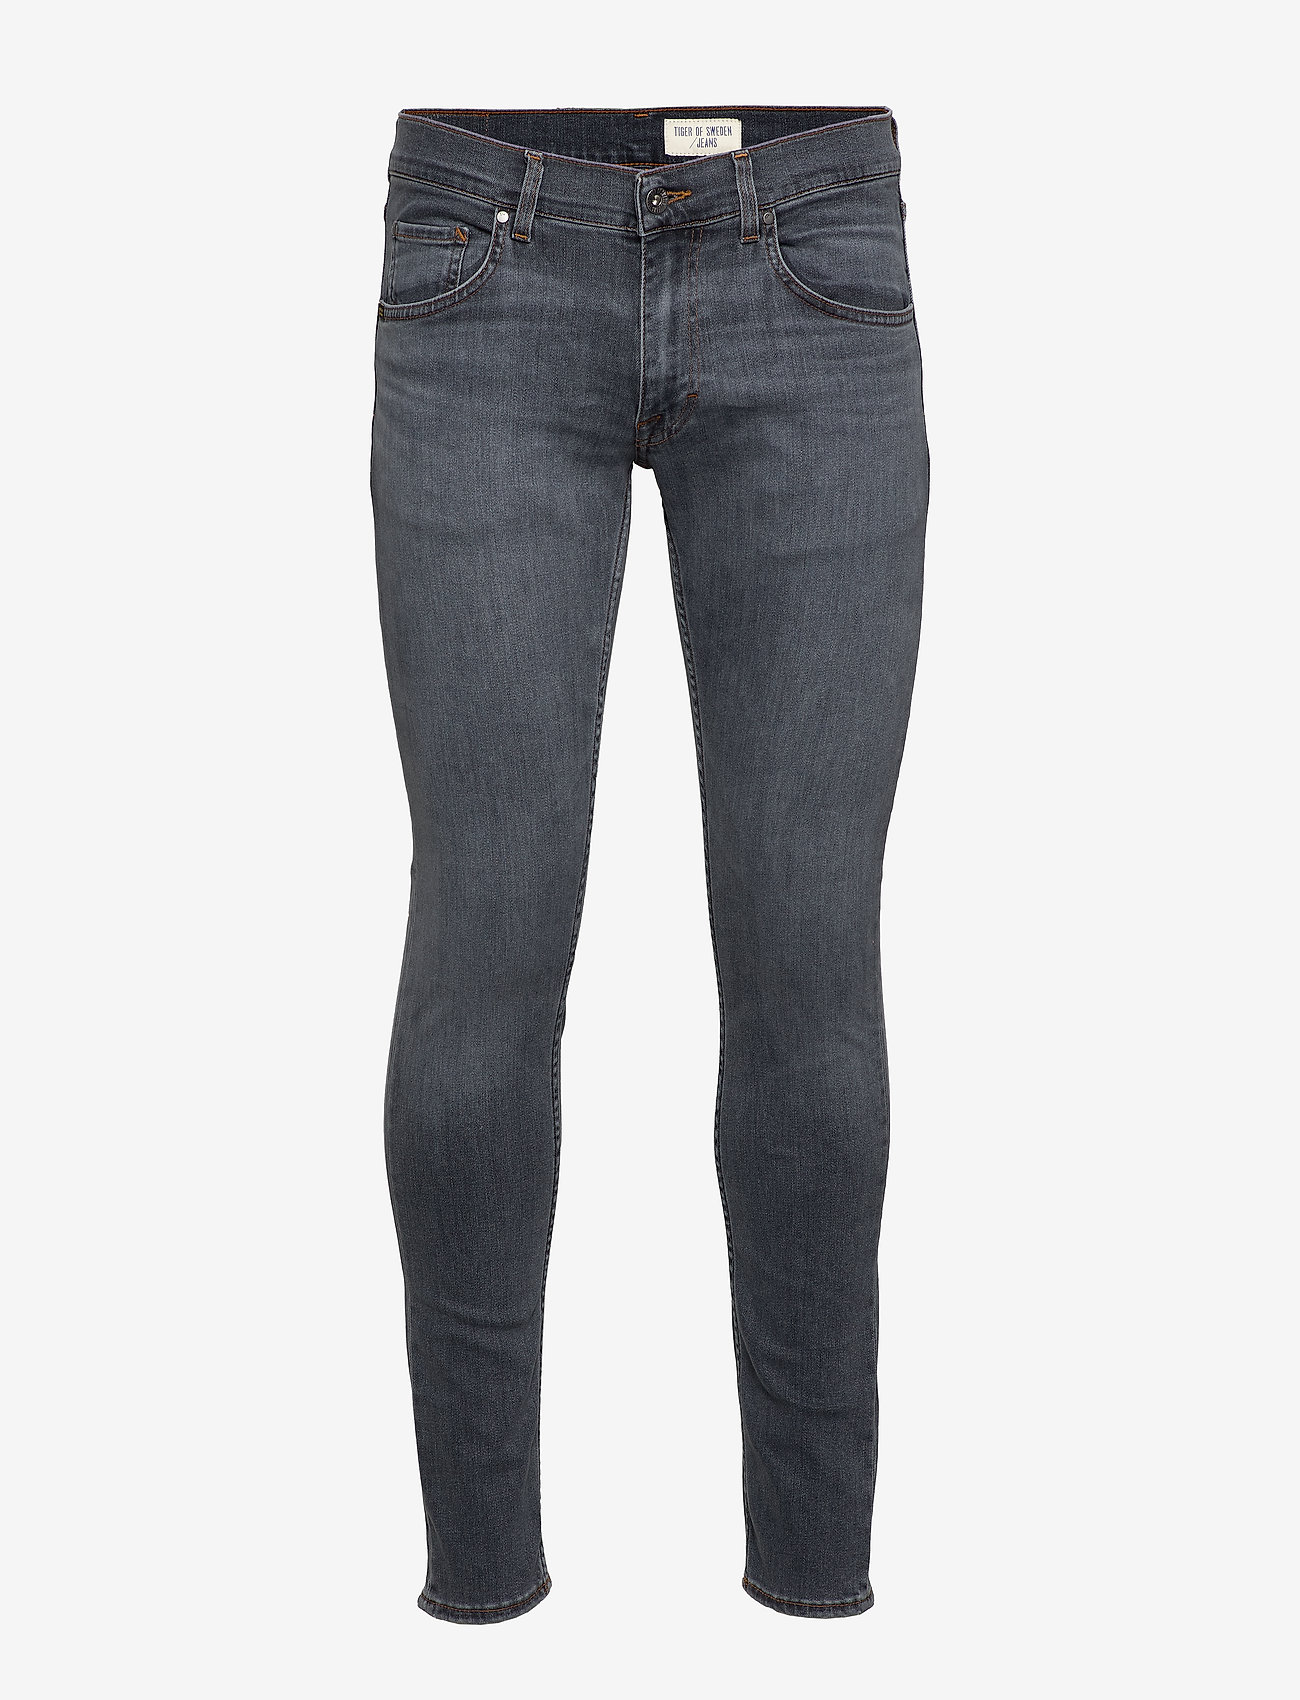 Tiger of Sweden Jeans - SLIM - slim jeans - black - 0